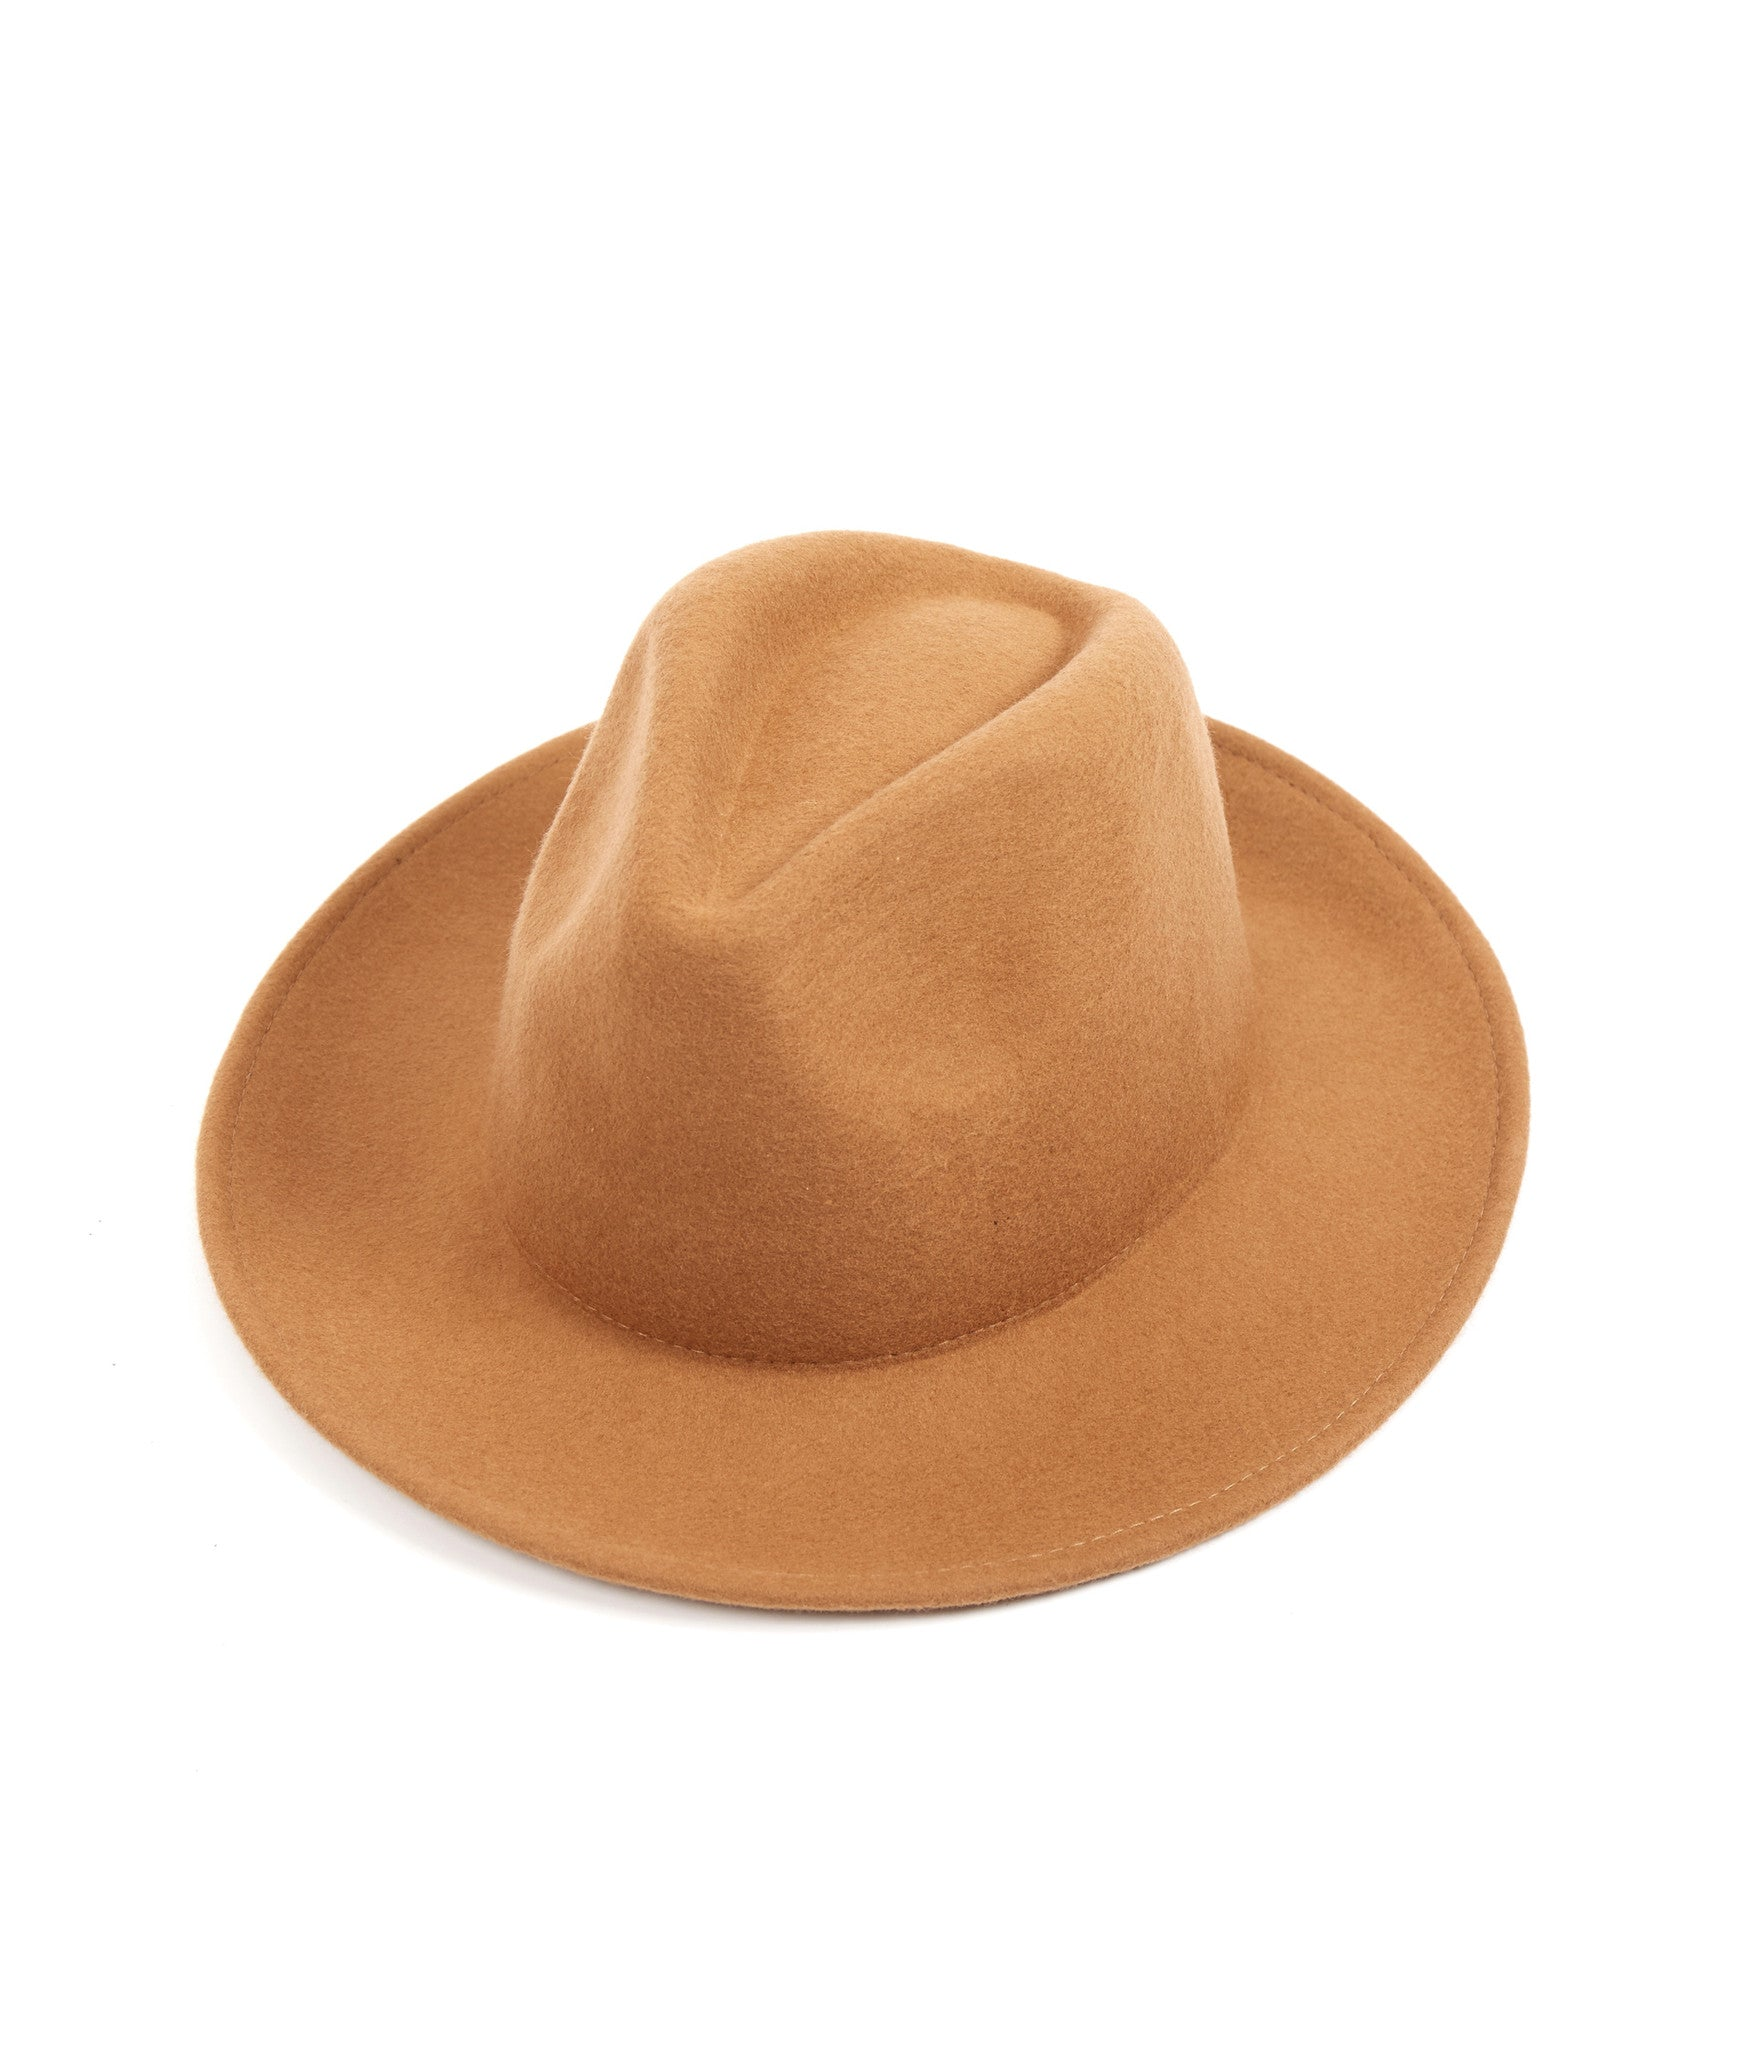 Dillinger Fedora Hat - Camel - underated london - underatedco - 1